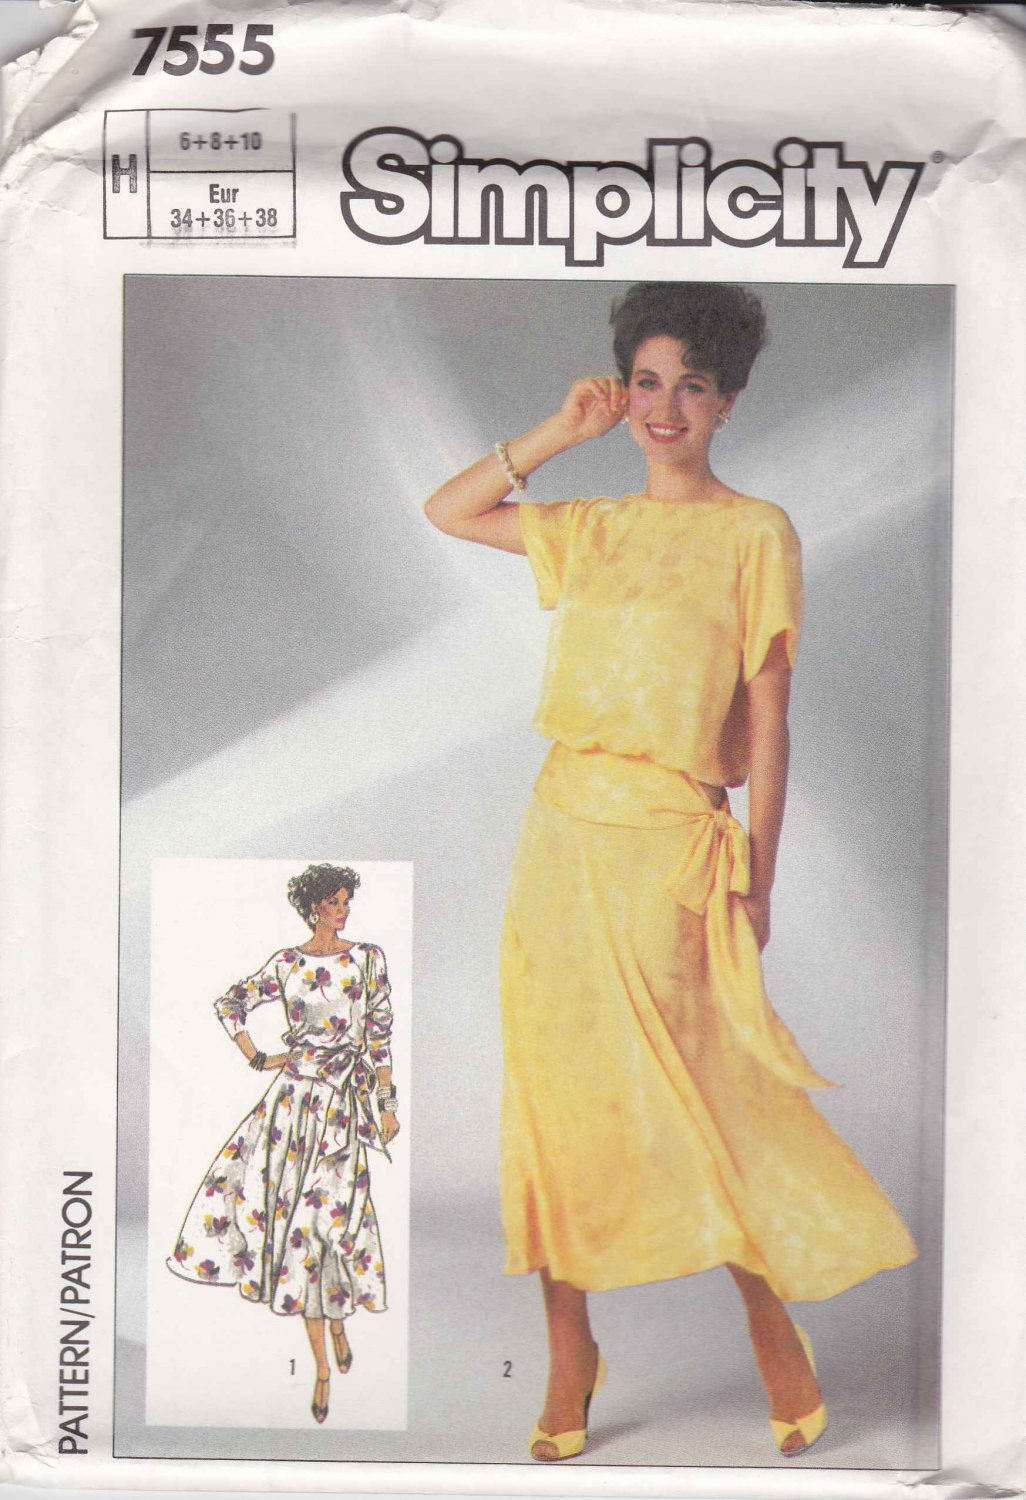 Simplicity Sewing Pattern 7555 Misses Size 6-10 Blouson Dress Short Long Sleeves Flared Skirt